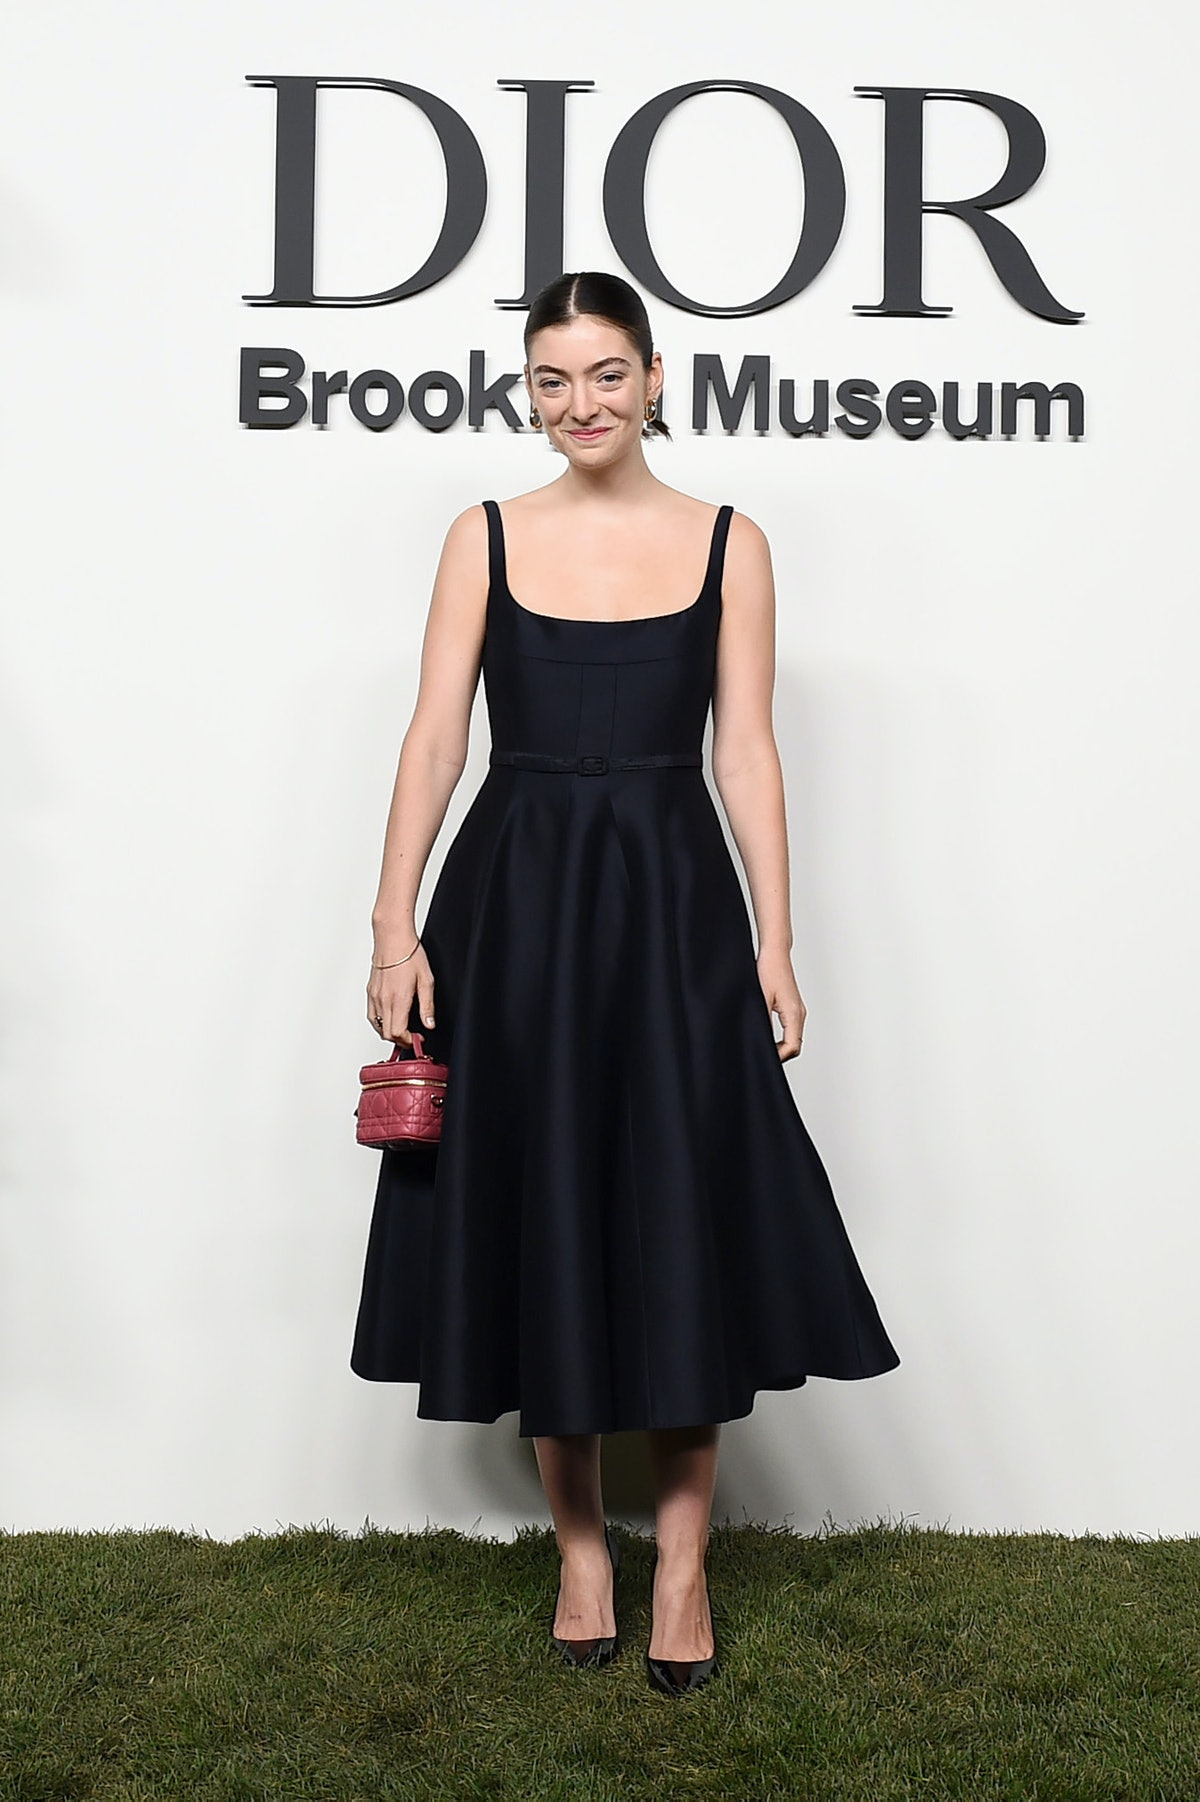 Lorde attends the Christian Dior Designer of Dreams Exhibition cocktail opening at the Brooklyn Muse...